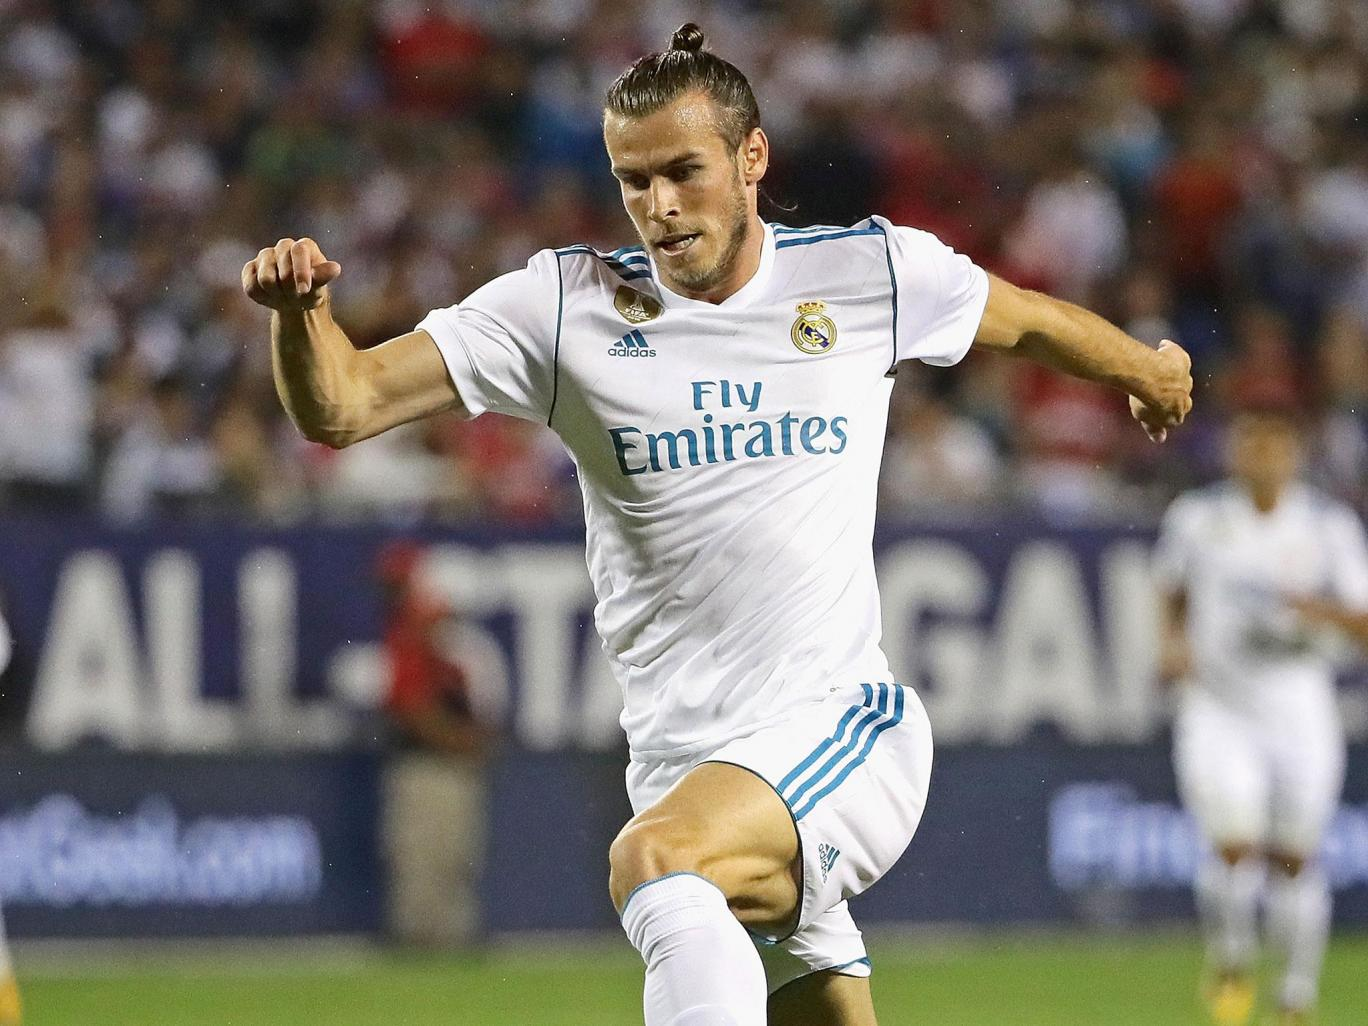 Gareth Bale Scores stunning equaliser in Real Madrid's 3-1 win against Juventus in Maryland